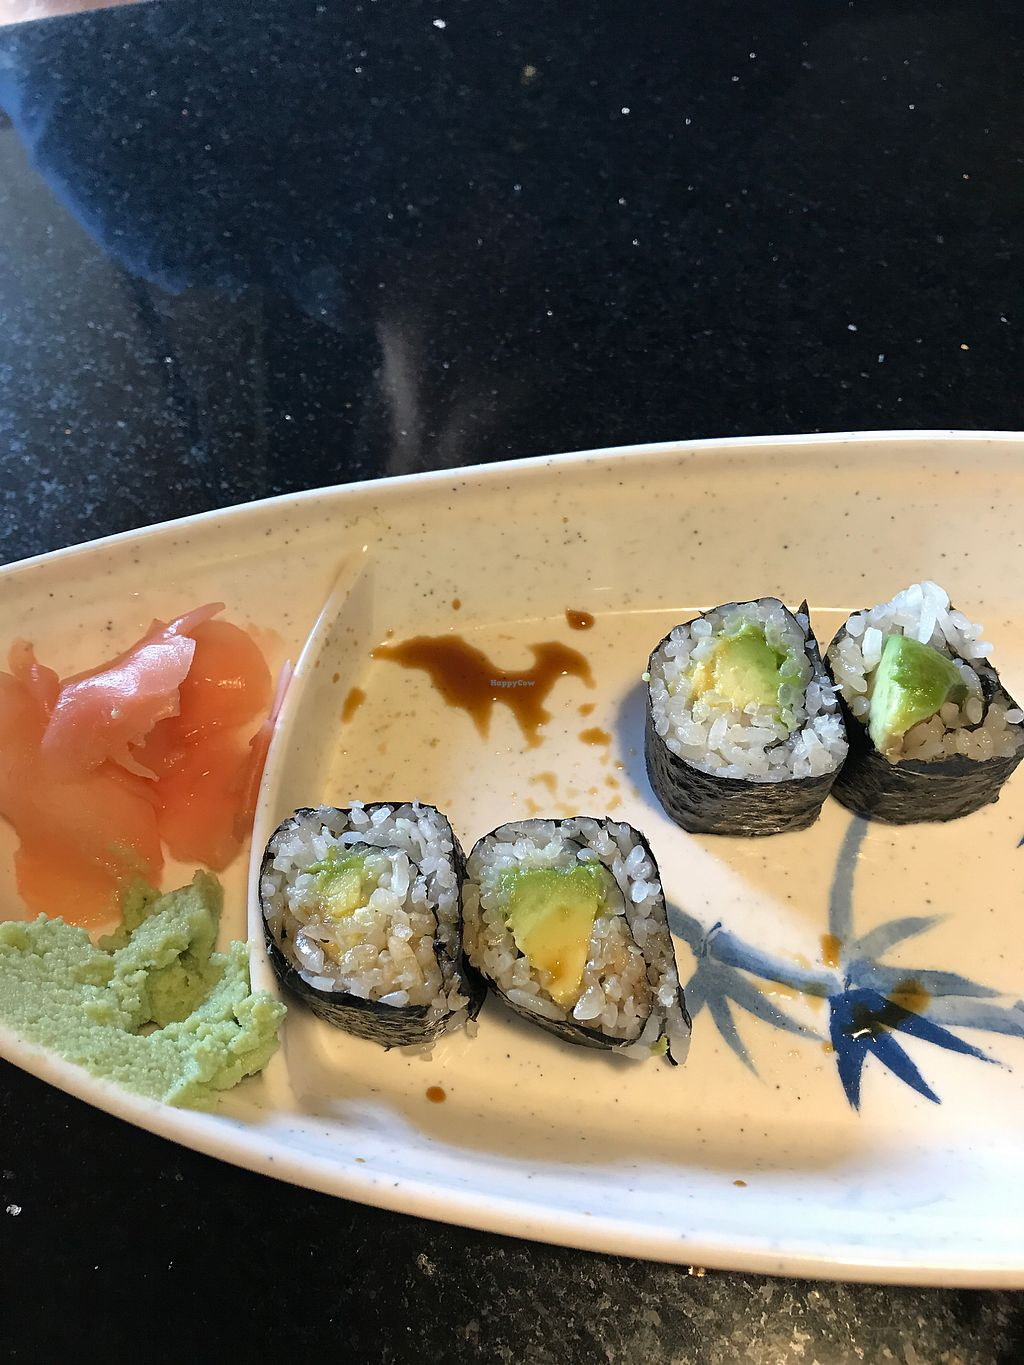 """Photo of Chopstix Asian Bistro  by <a href=""""/members/profile/MyGreenTongue"""">MyGreenTongue</a> <br/>avocado sushi  <br/> July 3, 2017  - <a href='/contact/abuse/image/29524/276208'>Report</a>"""